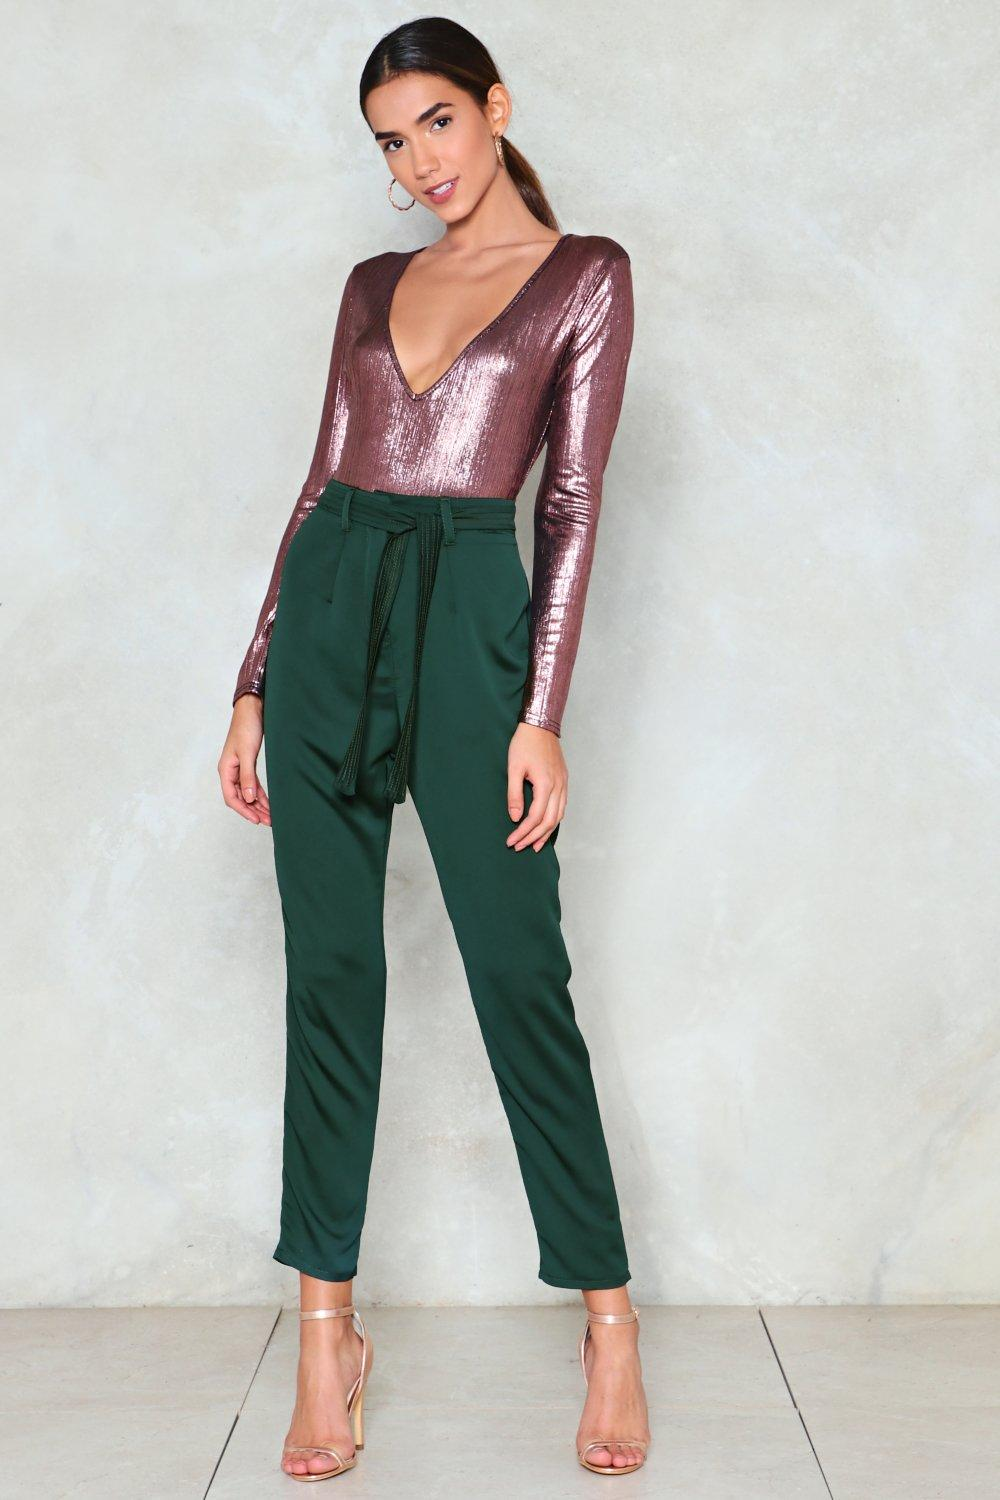 a17a513a8fa What Shirt To Wear With Green Pants - Data Dynamic AG